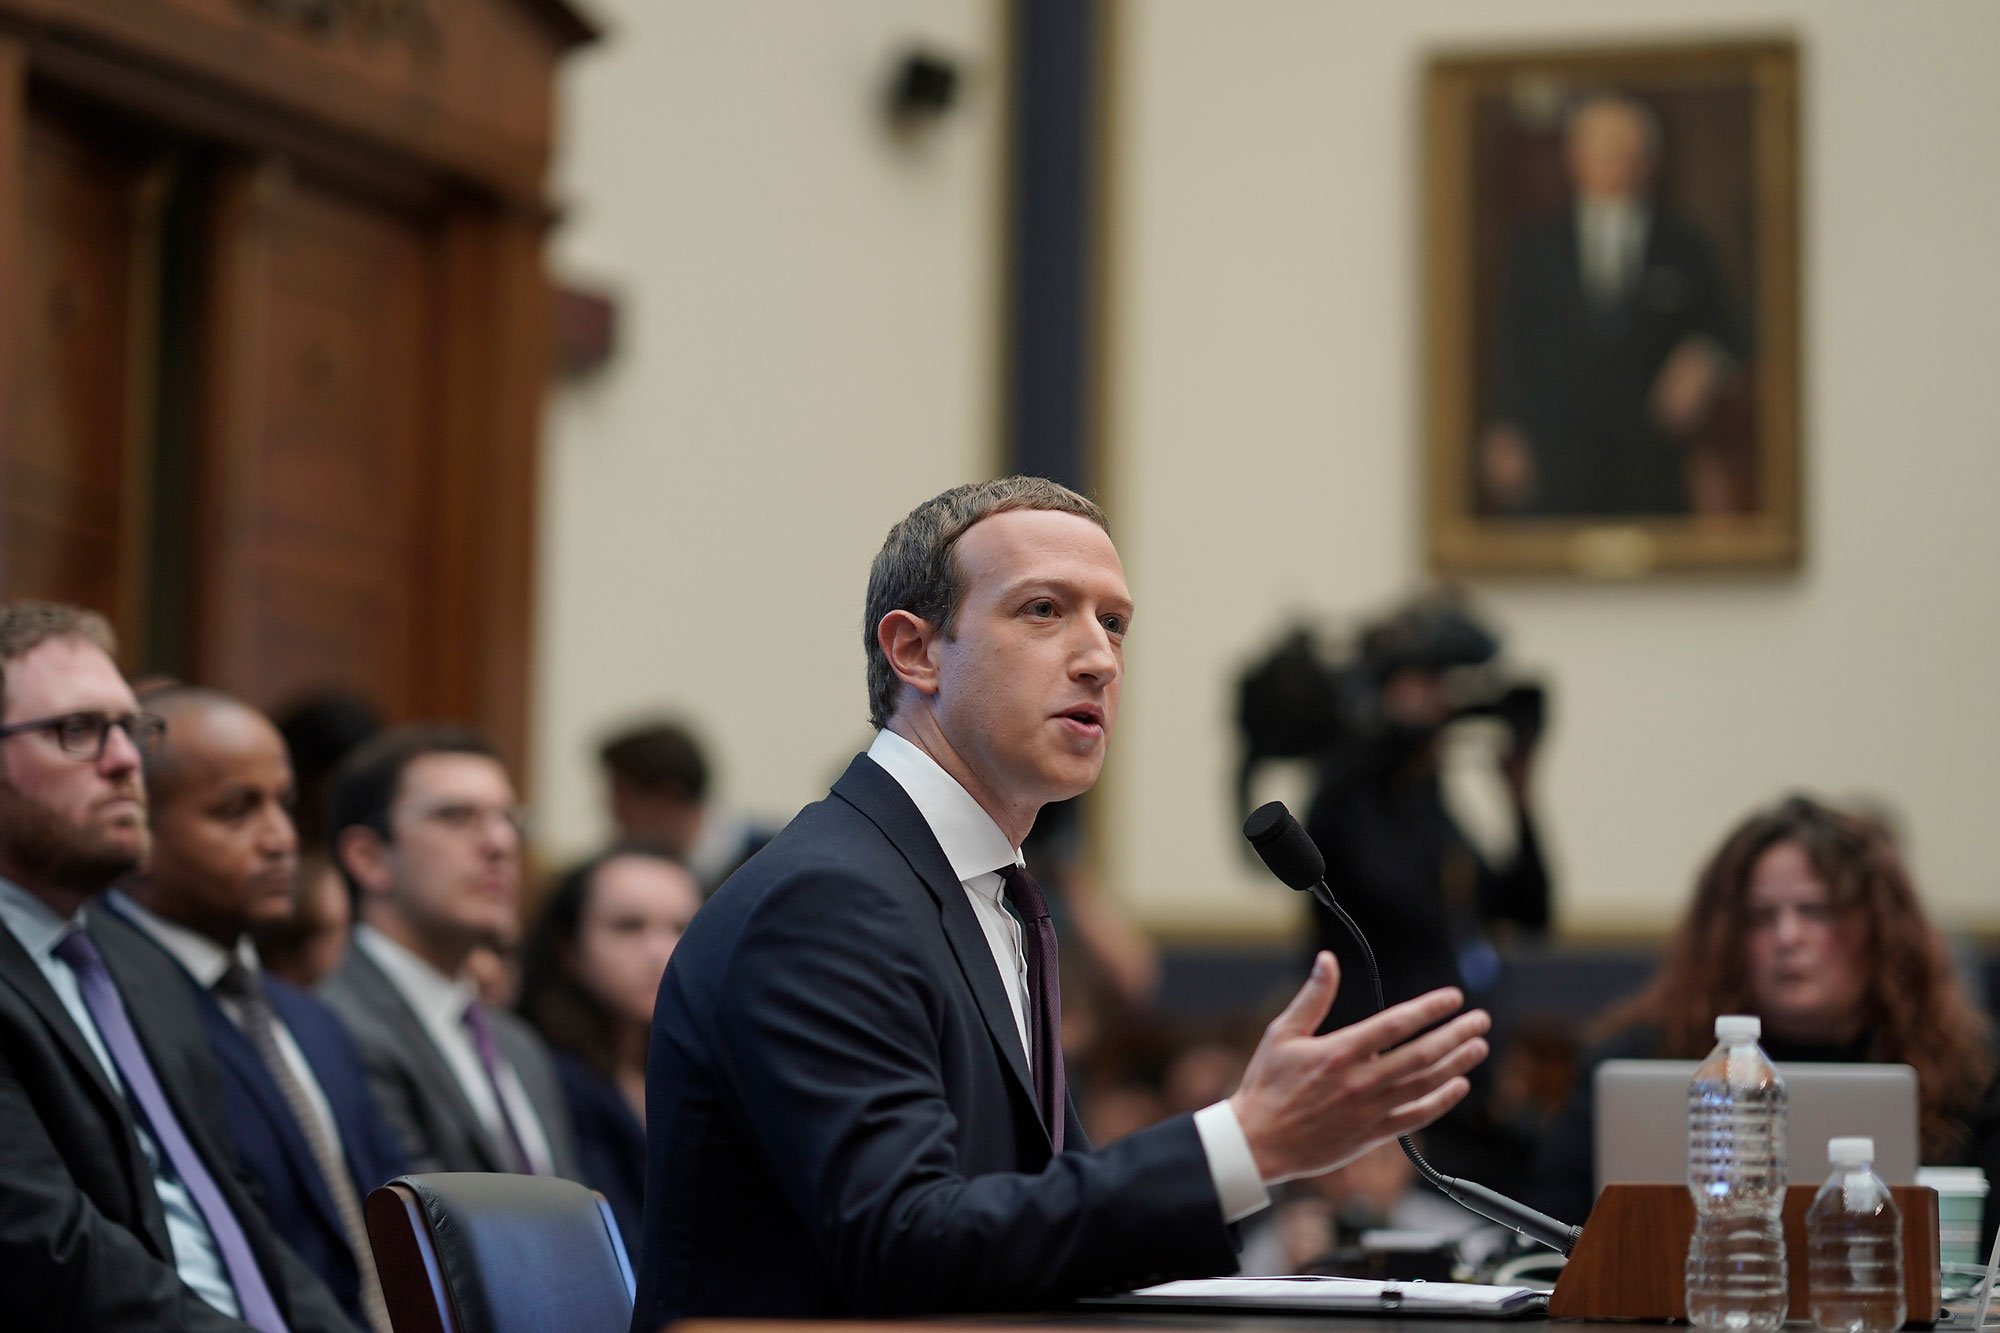 Zuckerberg faces Congress as Facebook prepares to debut news tab: Thursday Wake-Up Call